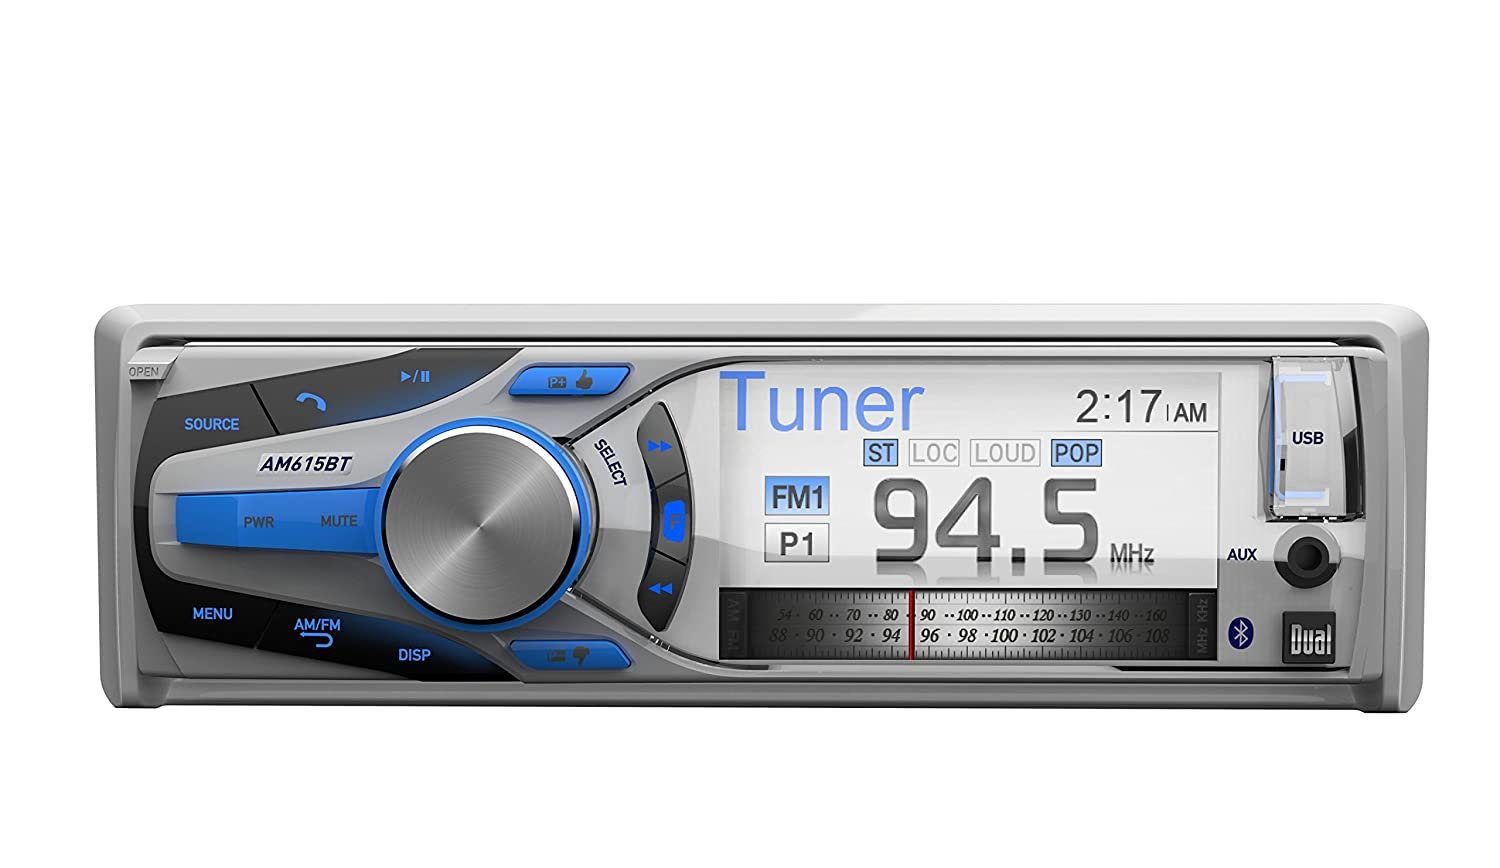 Amazon.com: Dual Electronics AM615BT 3 inch Full Color Multi-Line  Detachable Single DIN Marine Stereo with Built-In Bluetooth & MP3/WMA  Player: Cell Phones ...